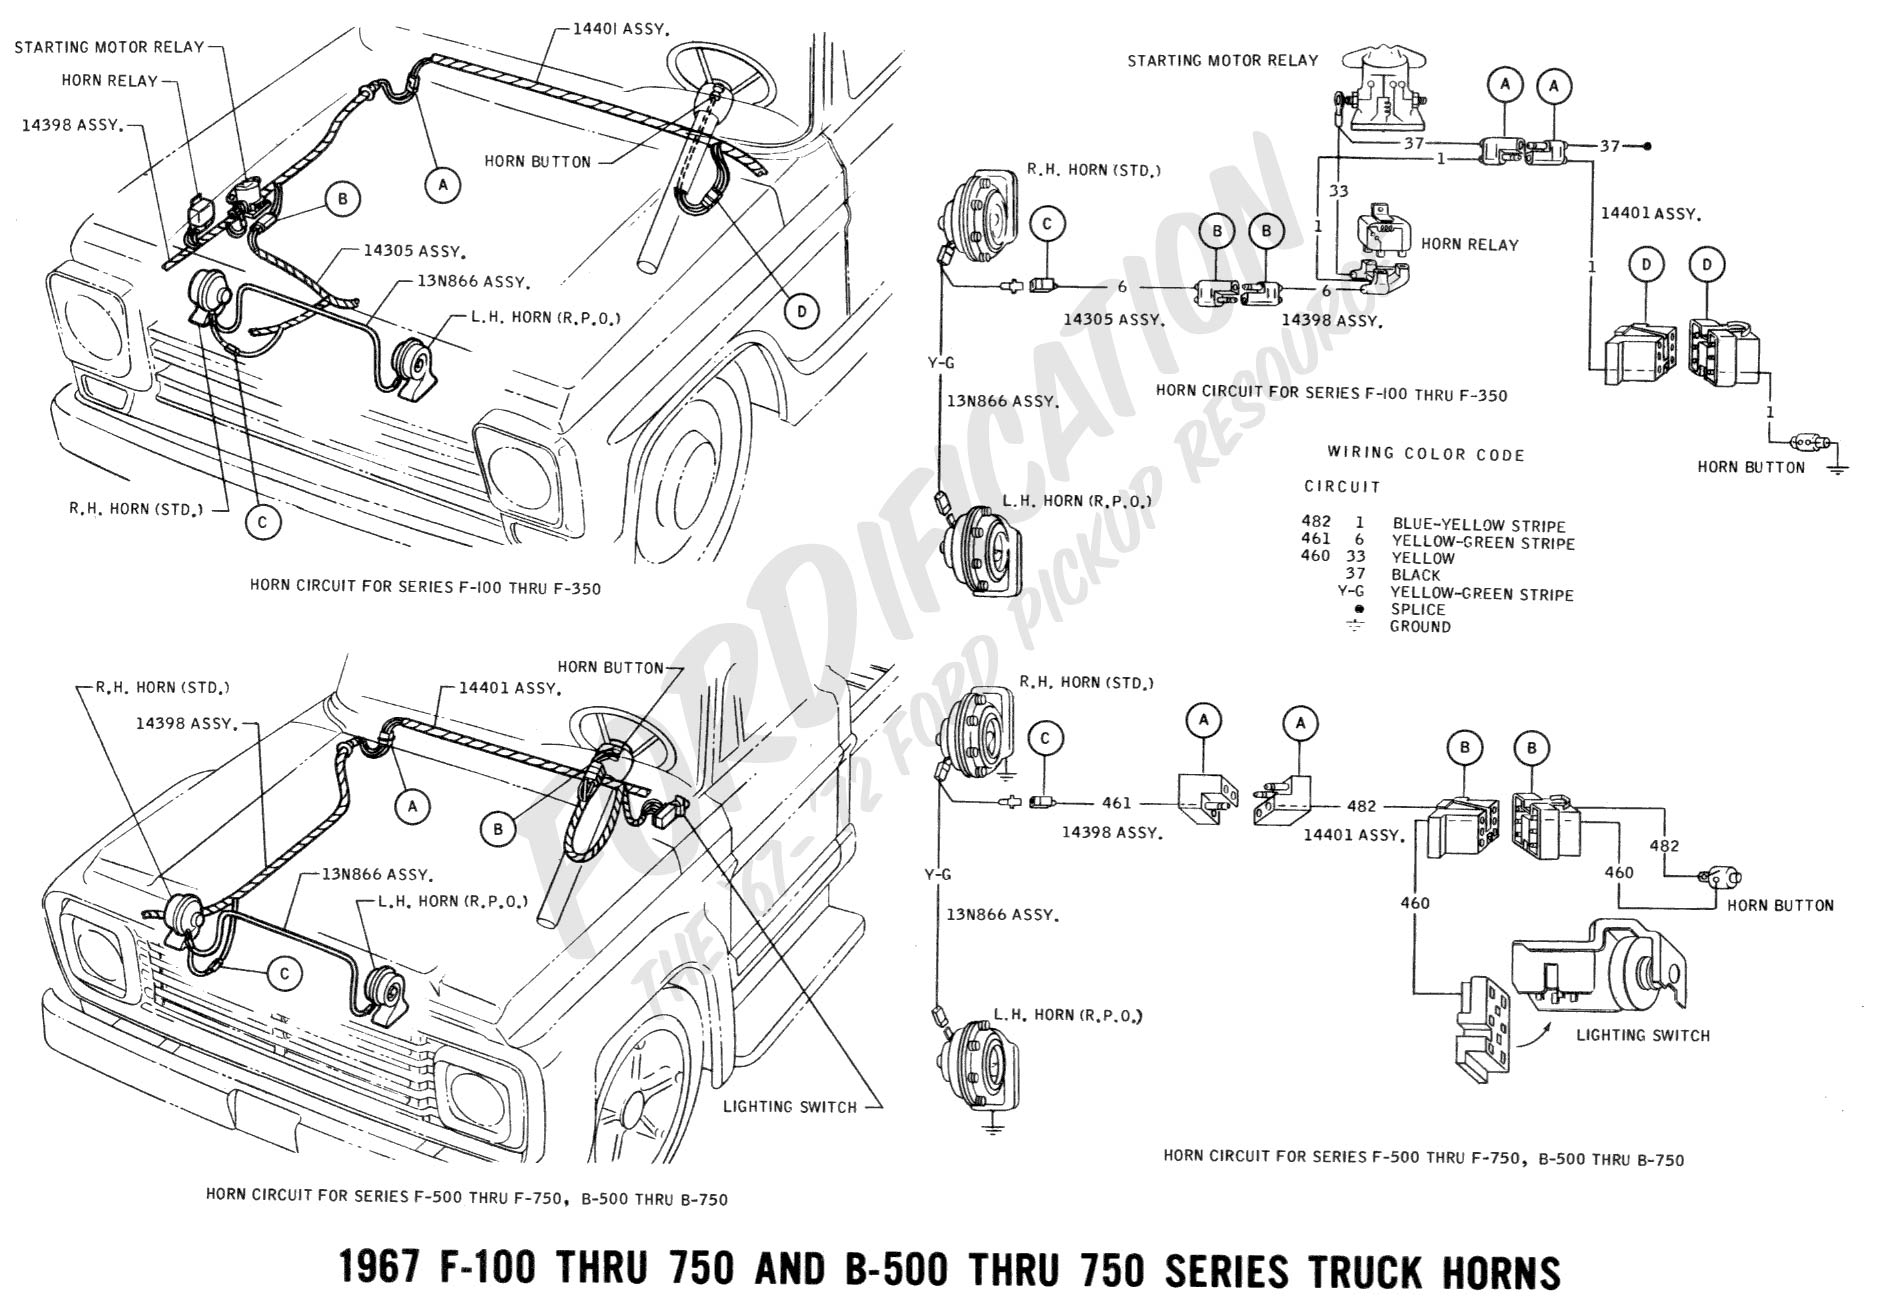 ford truck technical drawings and schematics - section h - wiring ... 1967 ford f100 wiring diagram ford ignition switch wiring diagram fordification.com